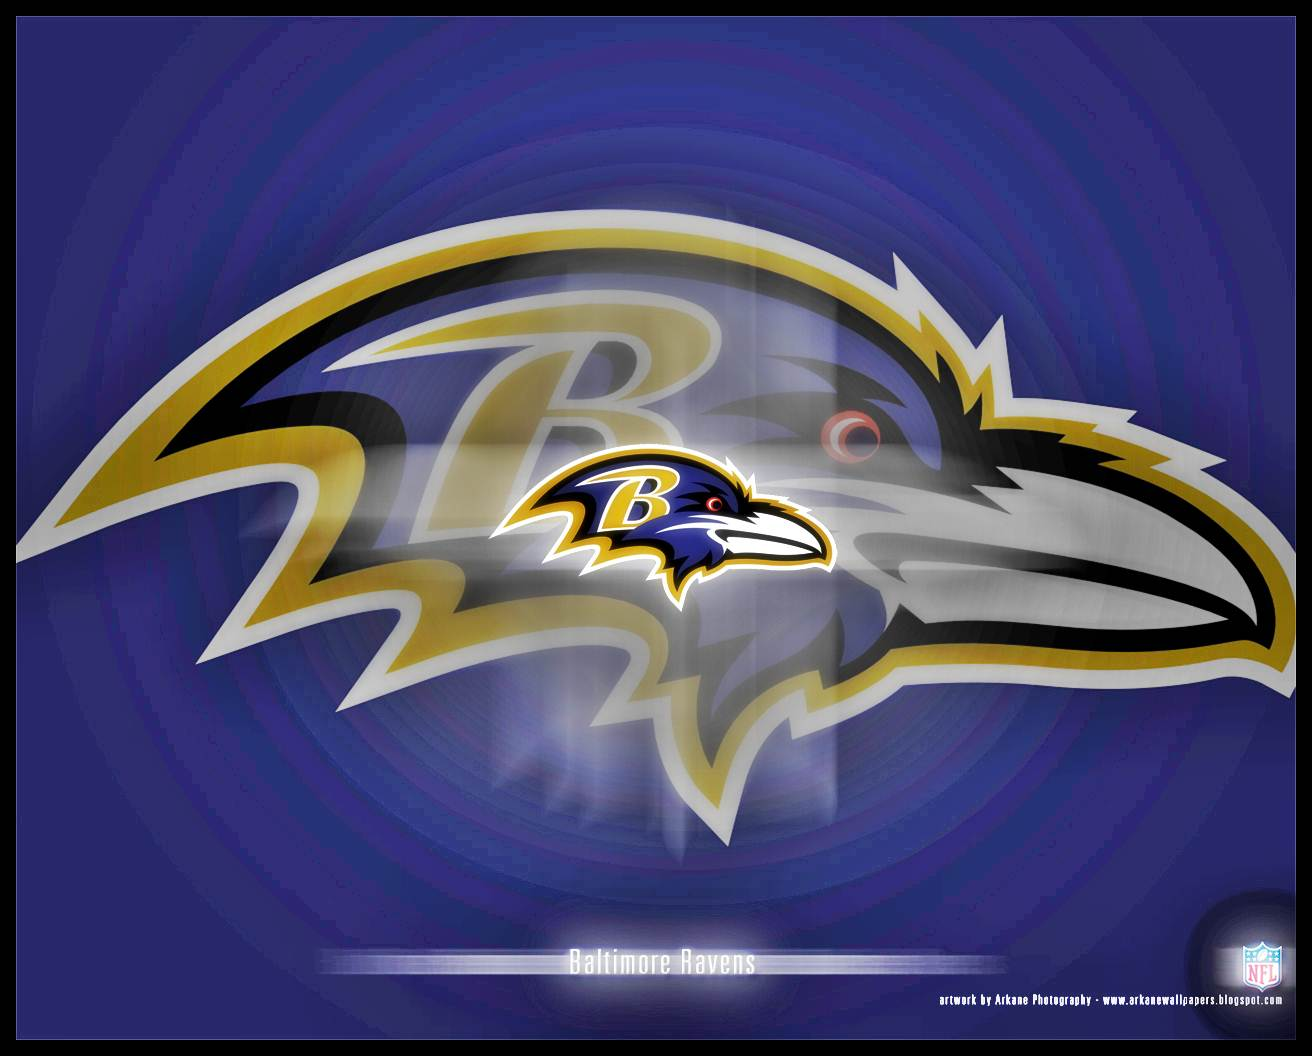 baltimore ravens wallpaper background theme desktop   Quotekocom 1312x1056